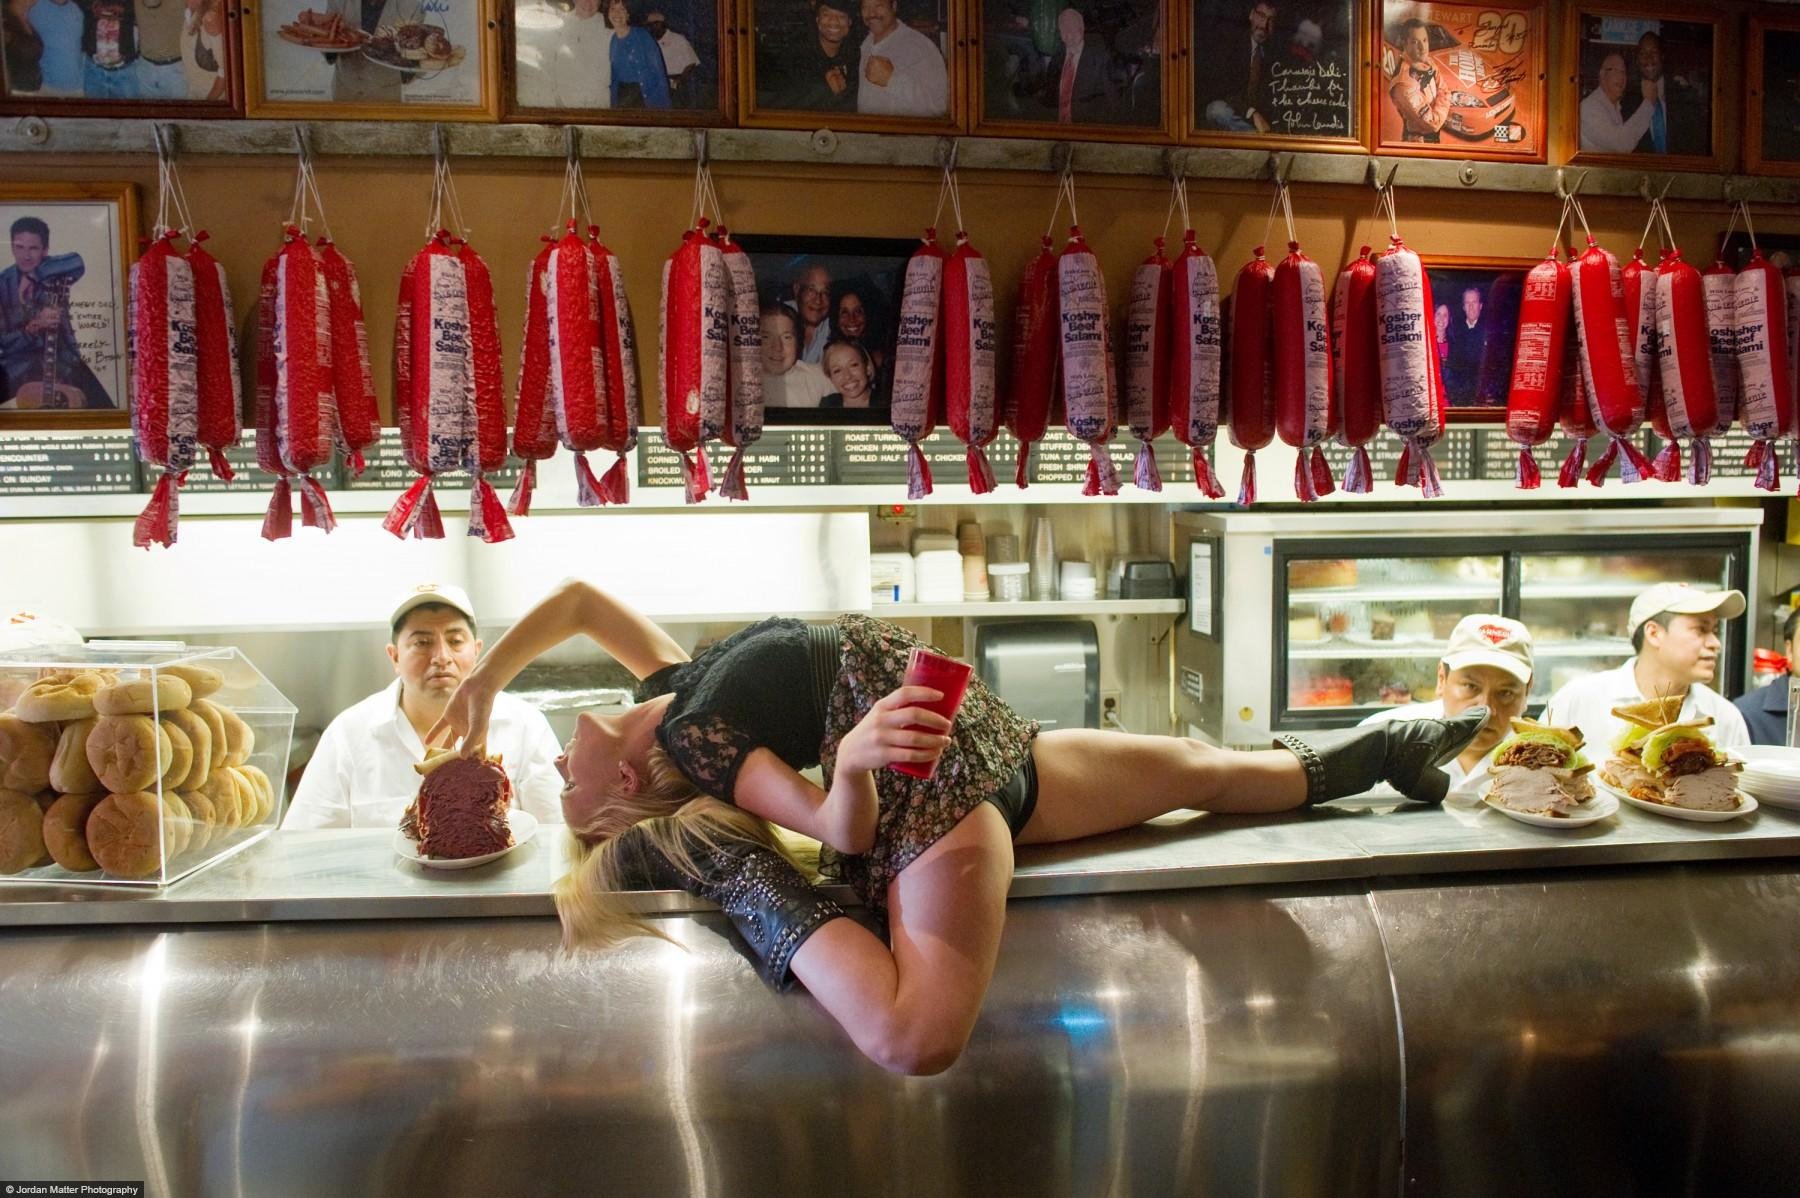 Dancers-Among-Us-in-Carnegie-Deli-Tenealle-Farragher